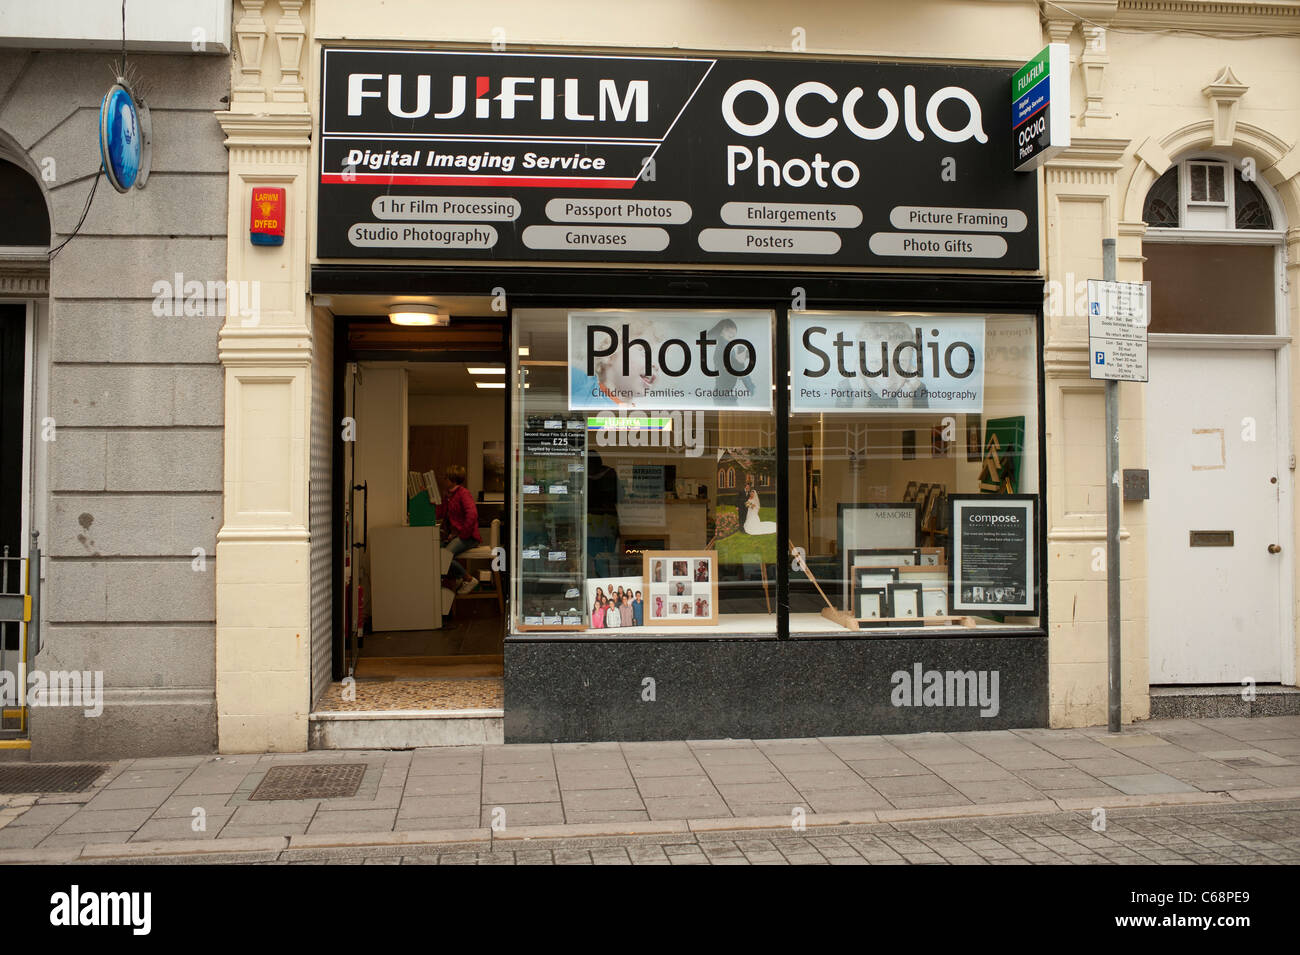 Ocula - a small independent locally owned photo lab and studio, aberystwyth wales uk - Stock Image